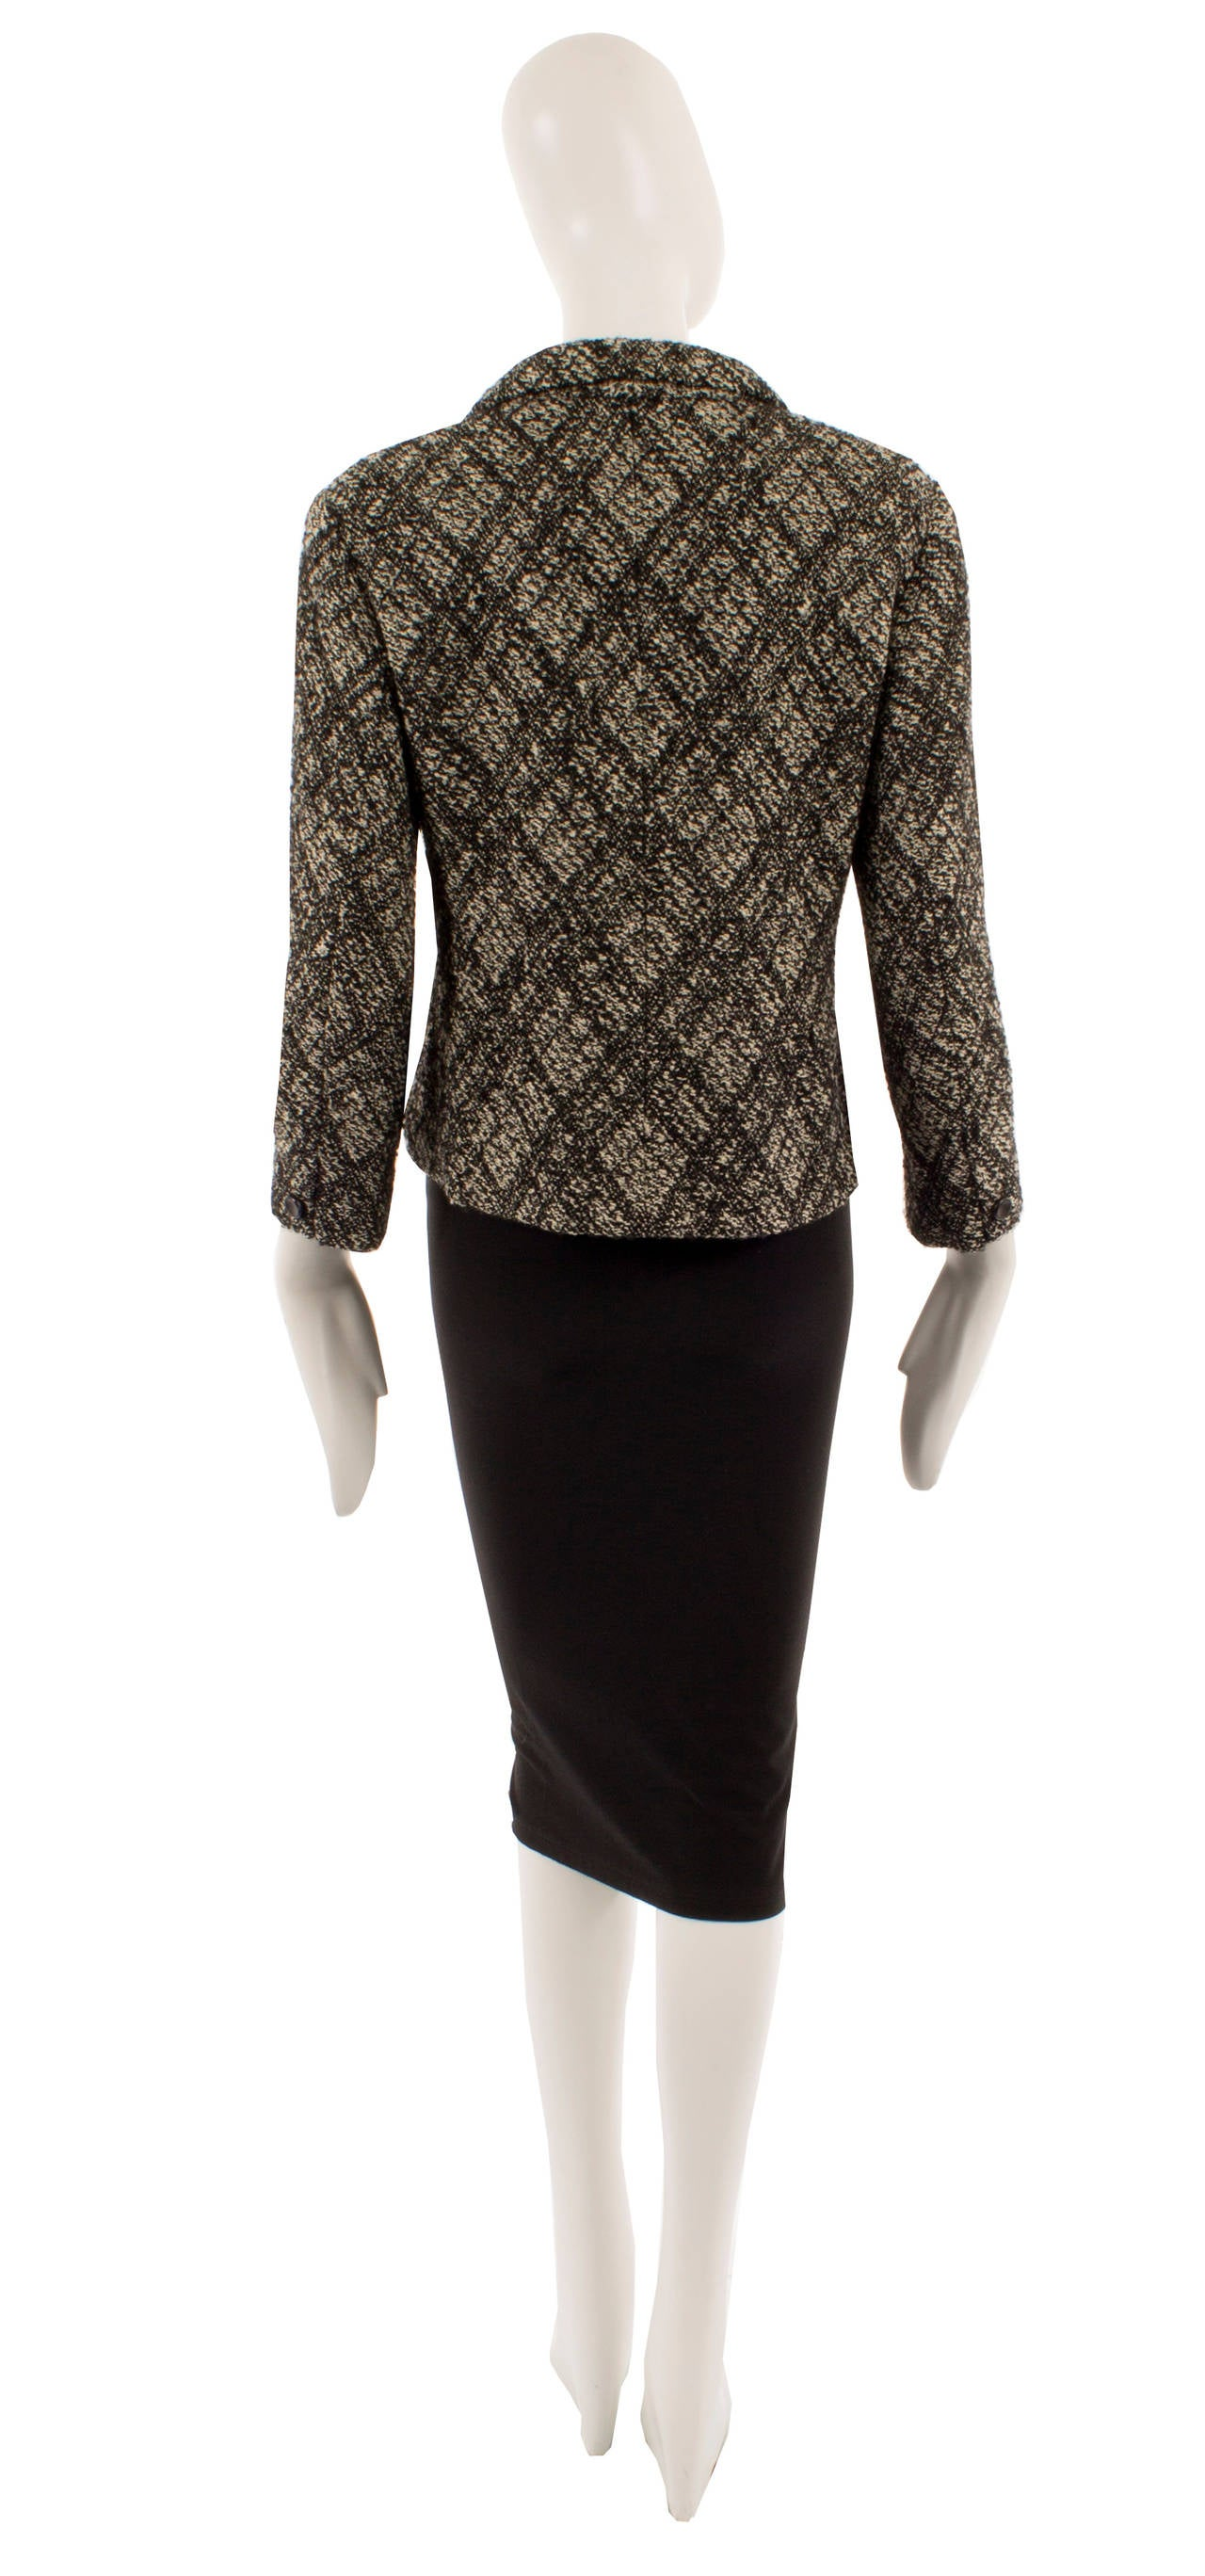 Yves saint laurent haute couture wool jacket circa 1964 for Haute couture jacket